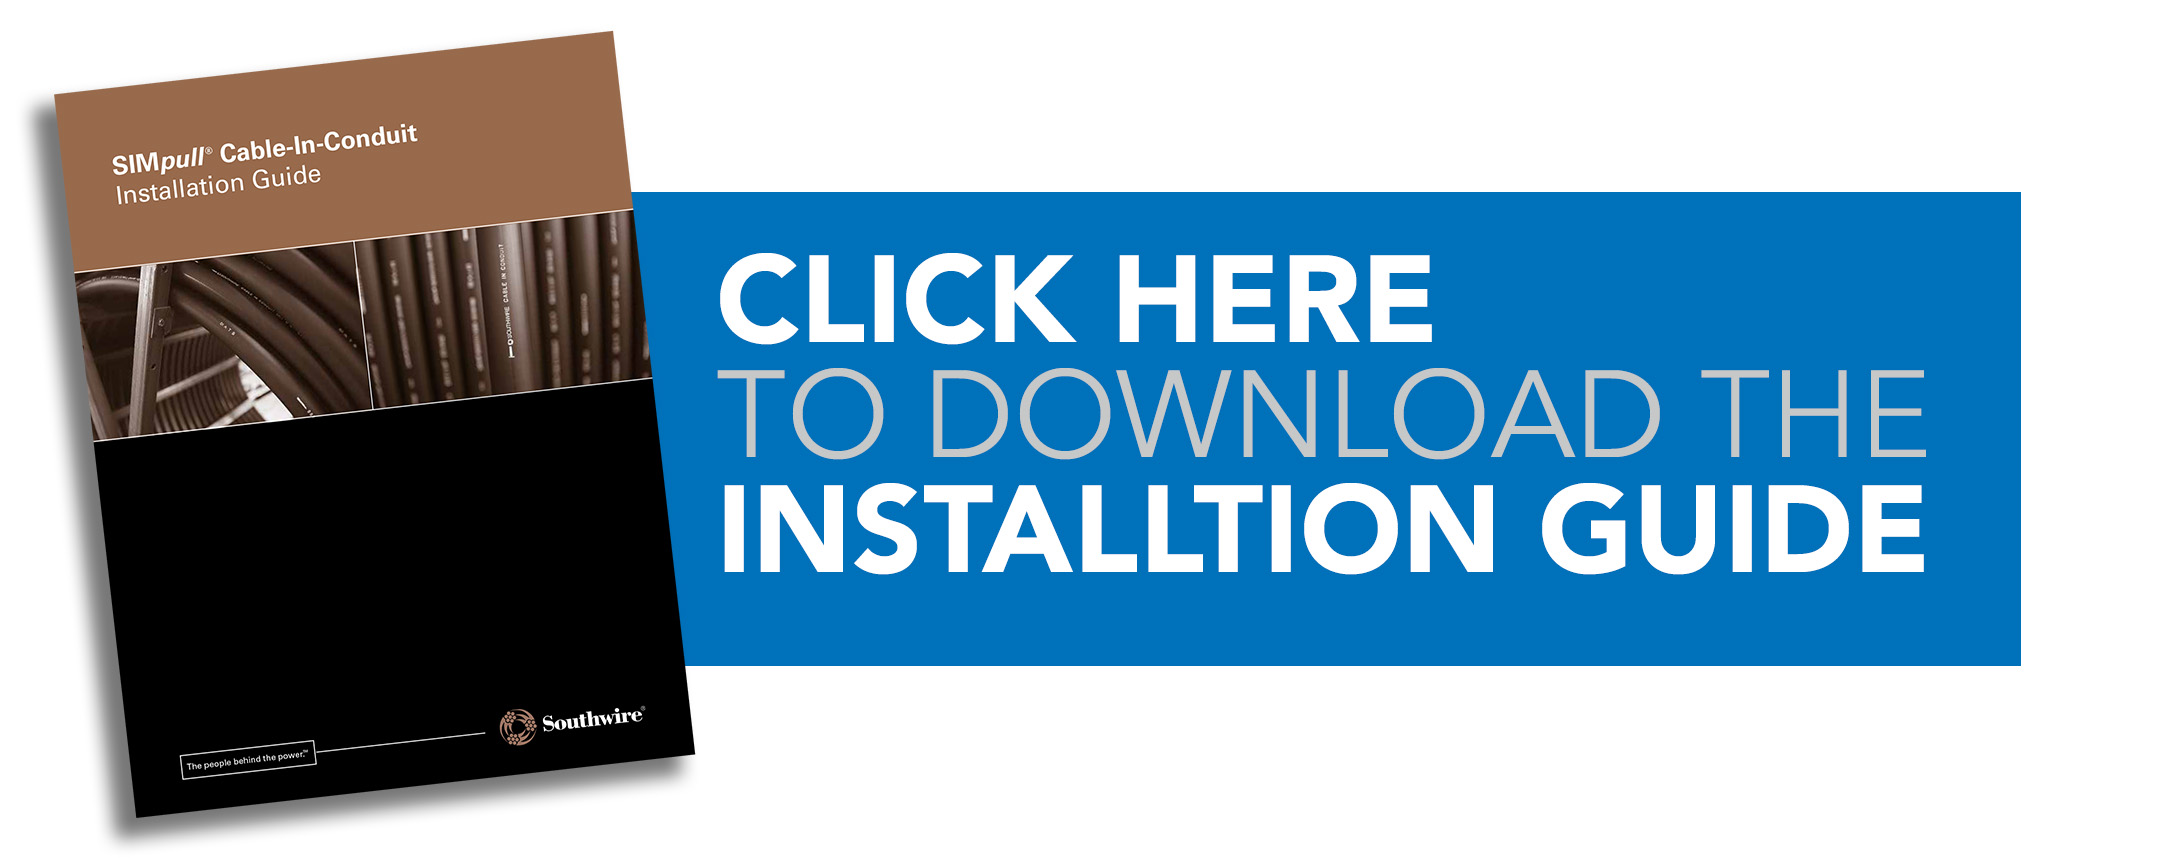 Download the Cable-In-Conduit installation Guide